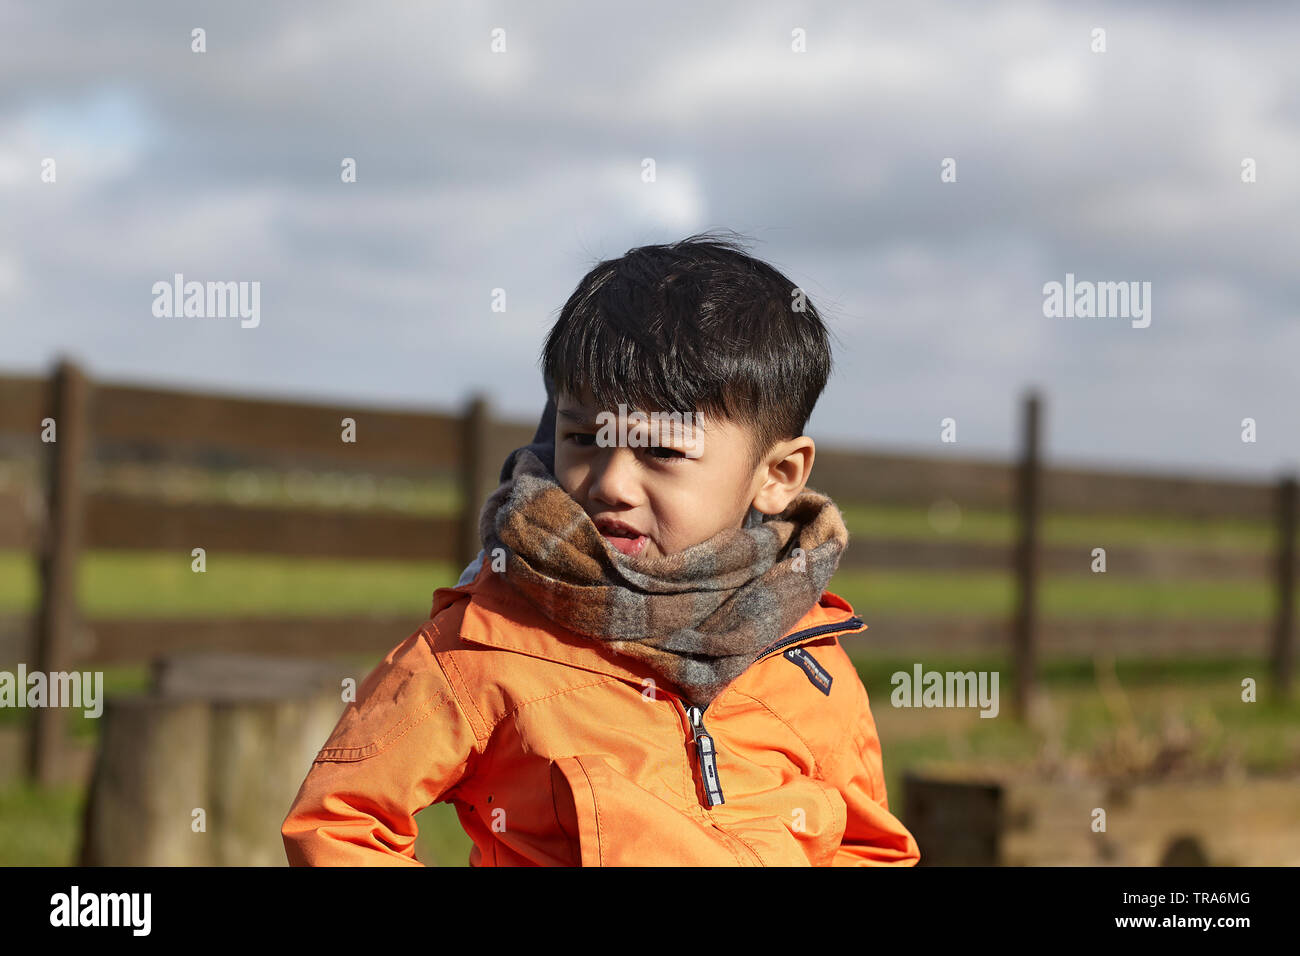 Portrait of an adorable little Asian boy with big brown eyeswearing winter clothing - Stock Image